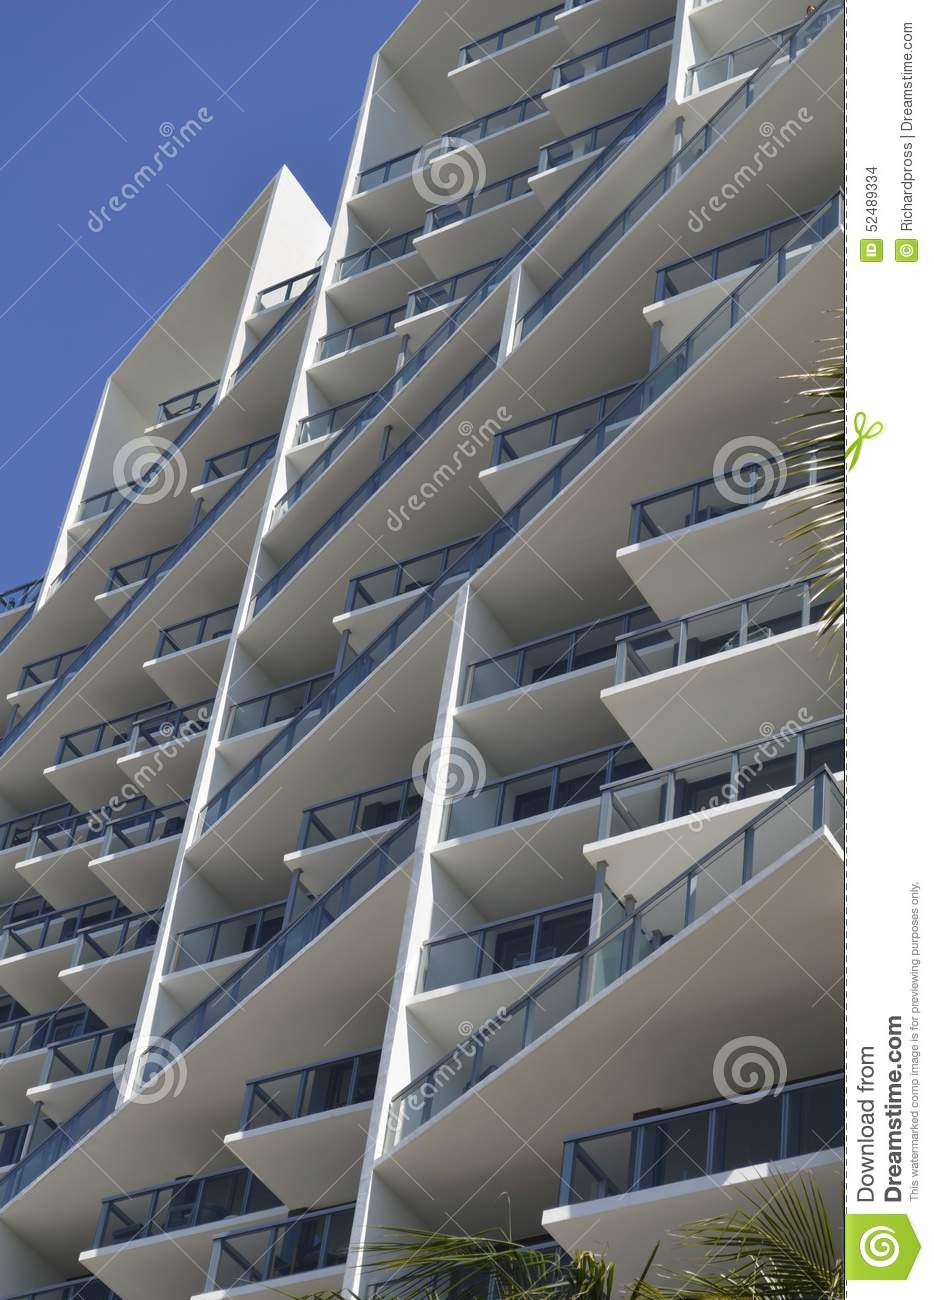 Modern Architecture Miami miami beach modern architecture stock photo - image: 52489334